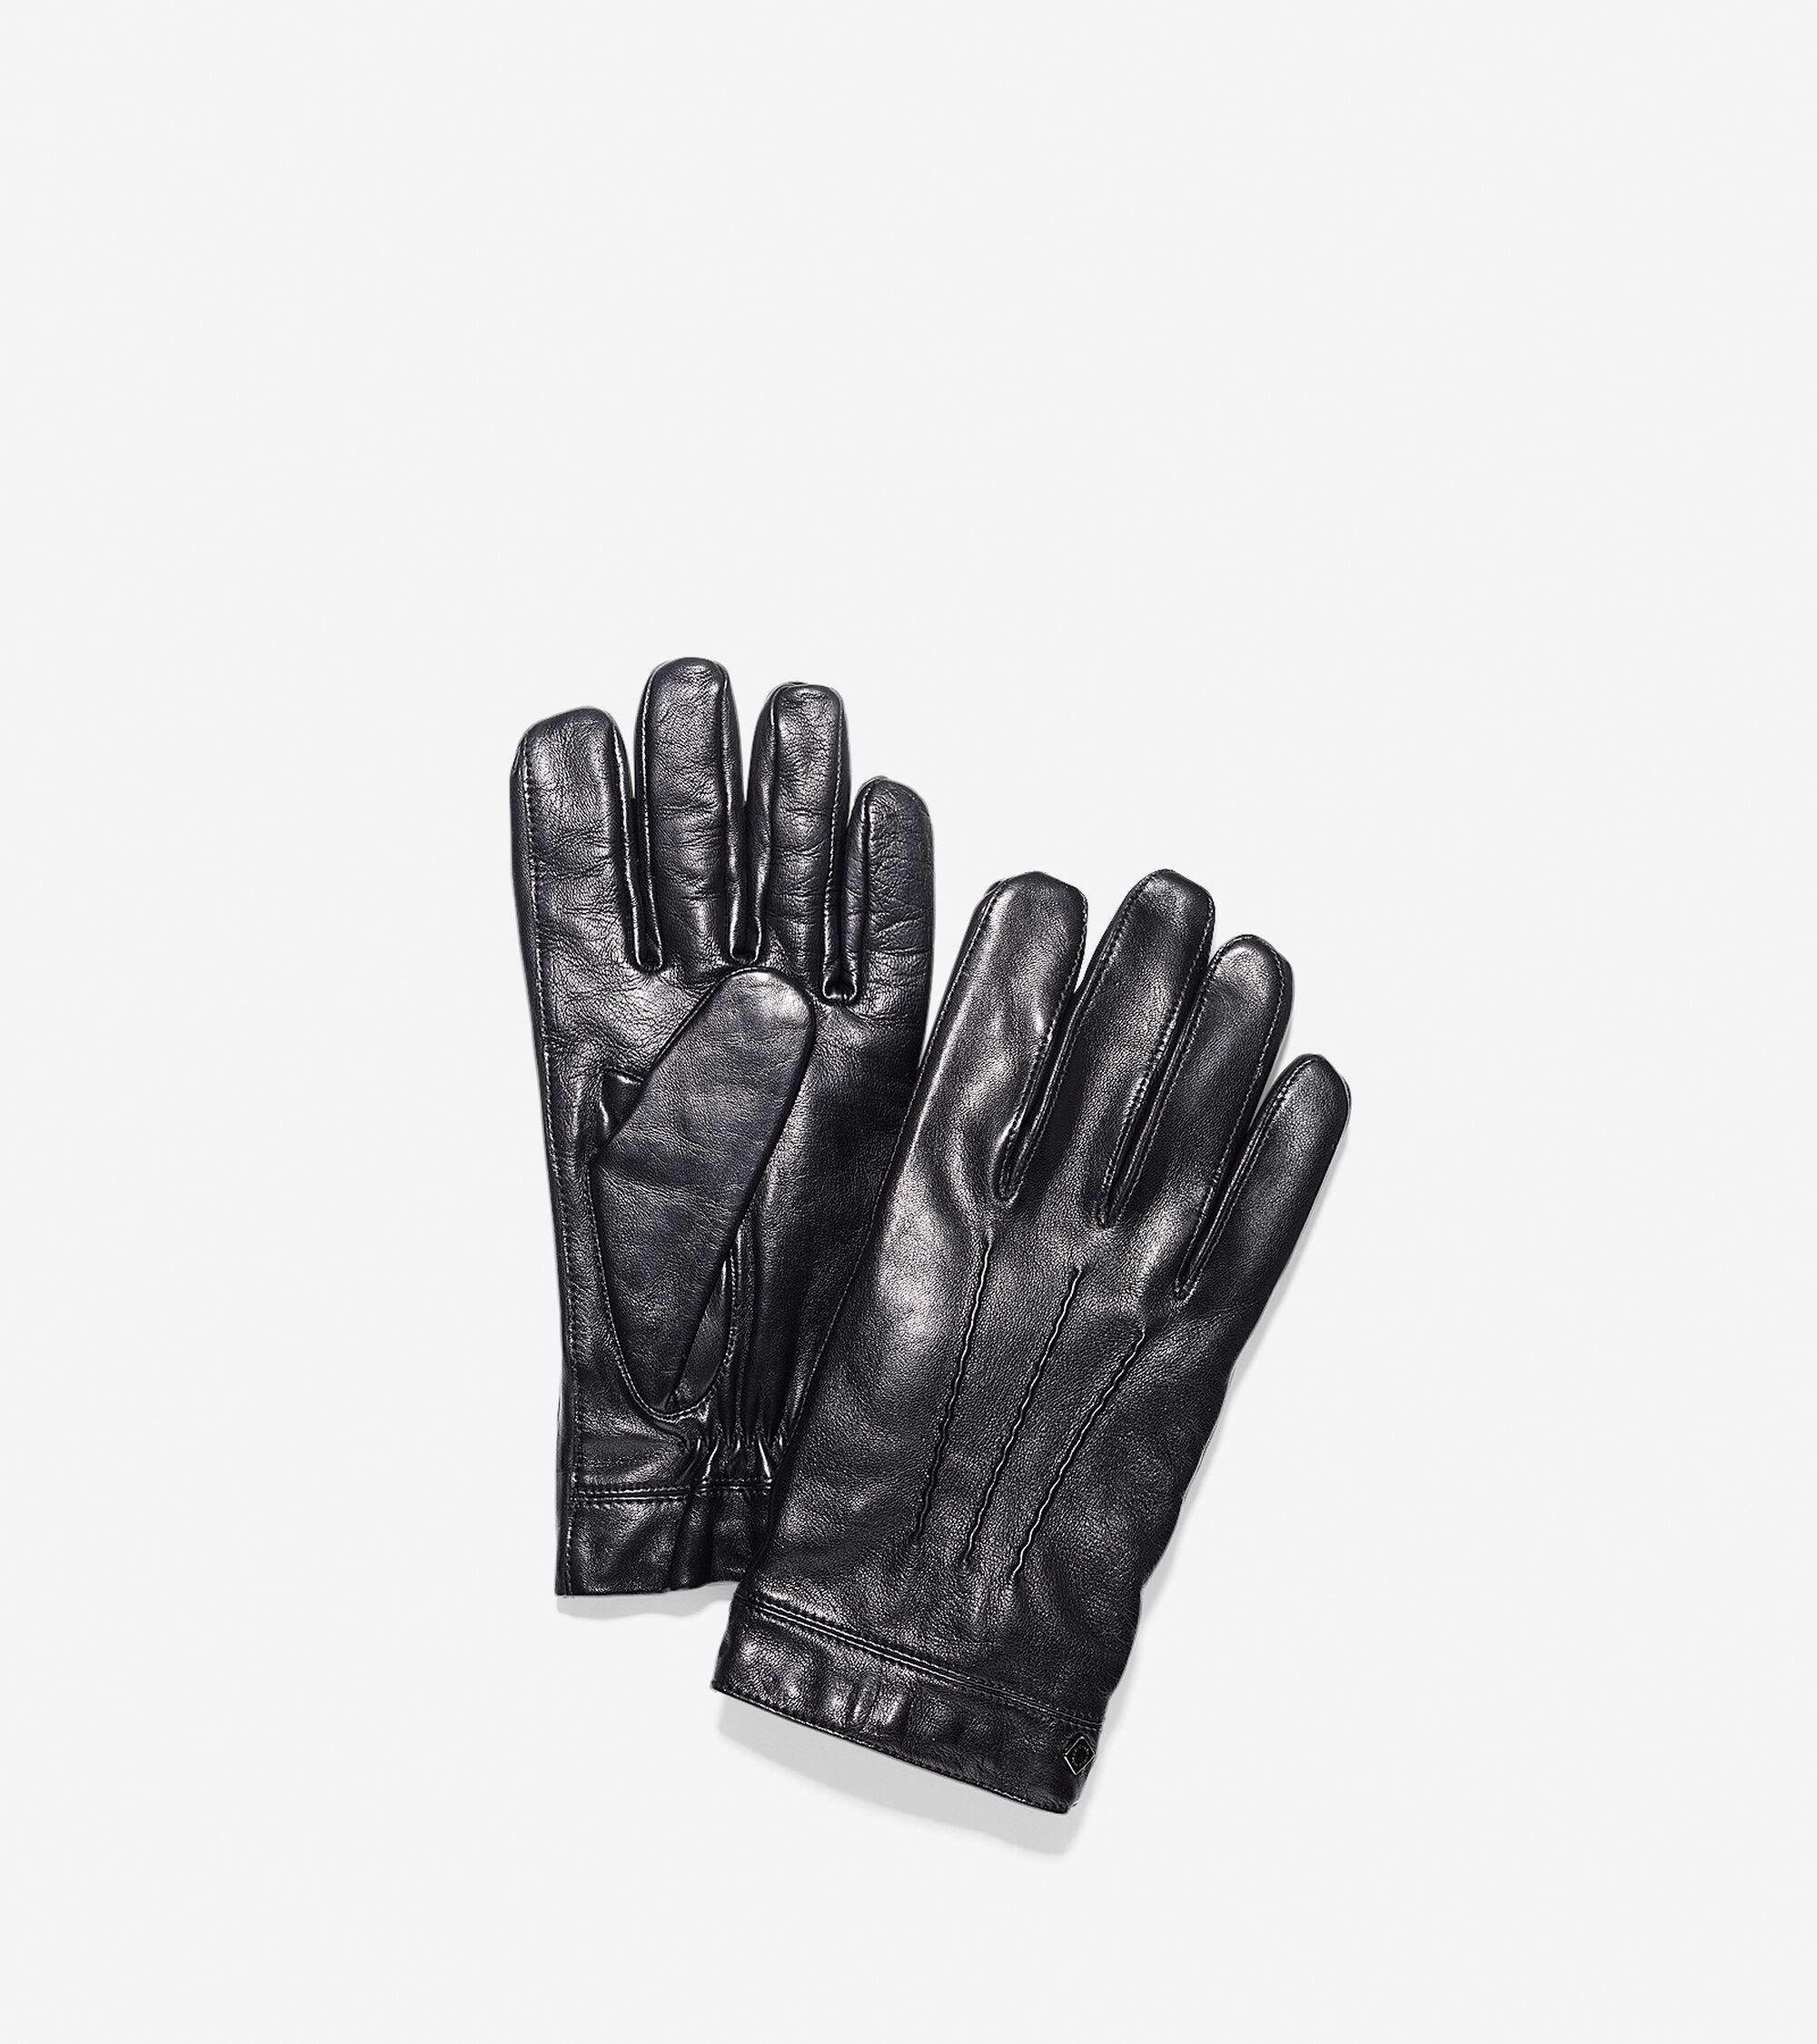 Cole haan black leather gloves - Spliced Lambskin Leather Gloves Spliced Lambskin Leather Gloves Colehaan